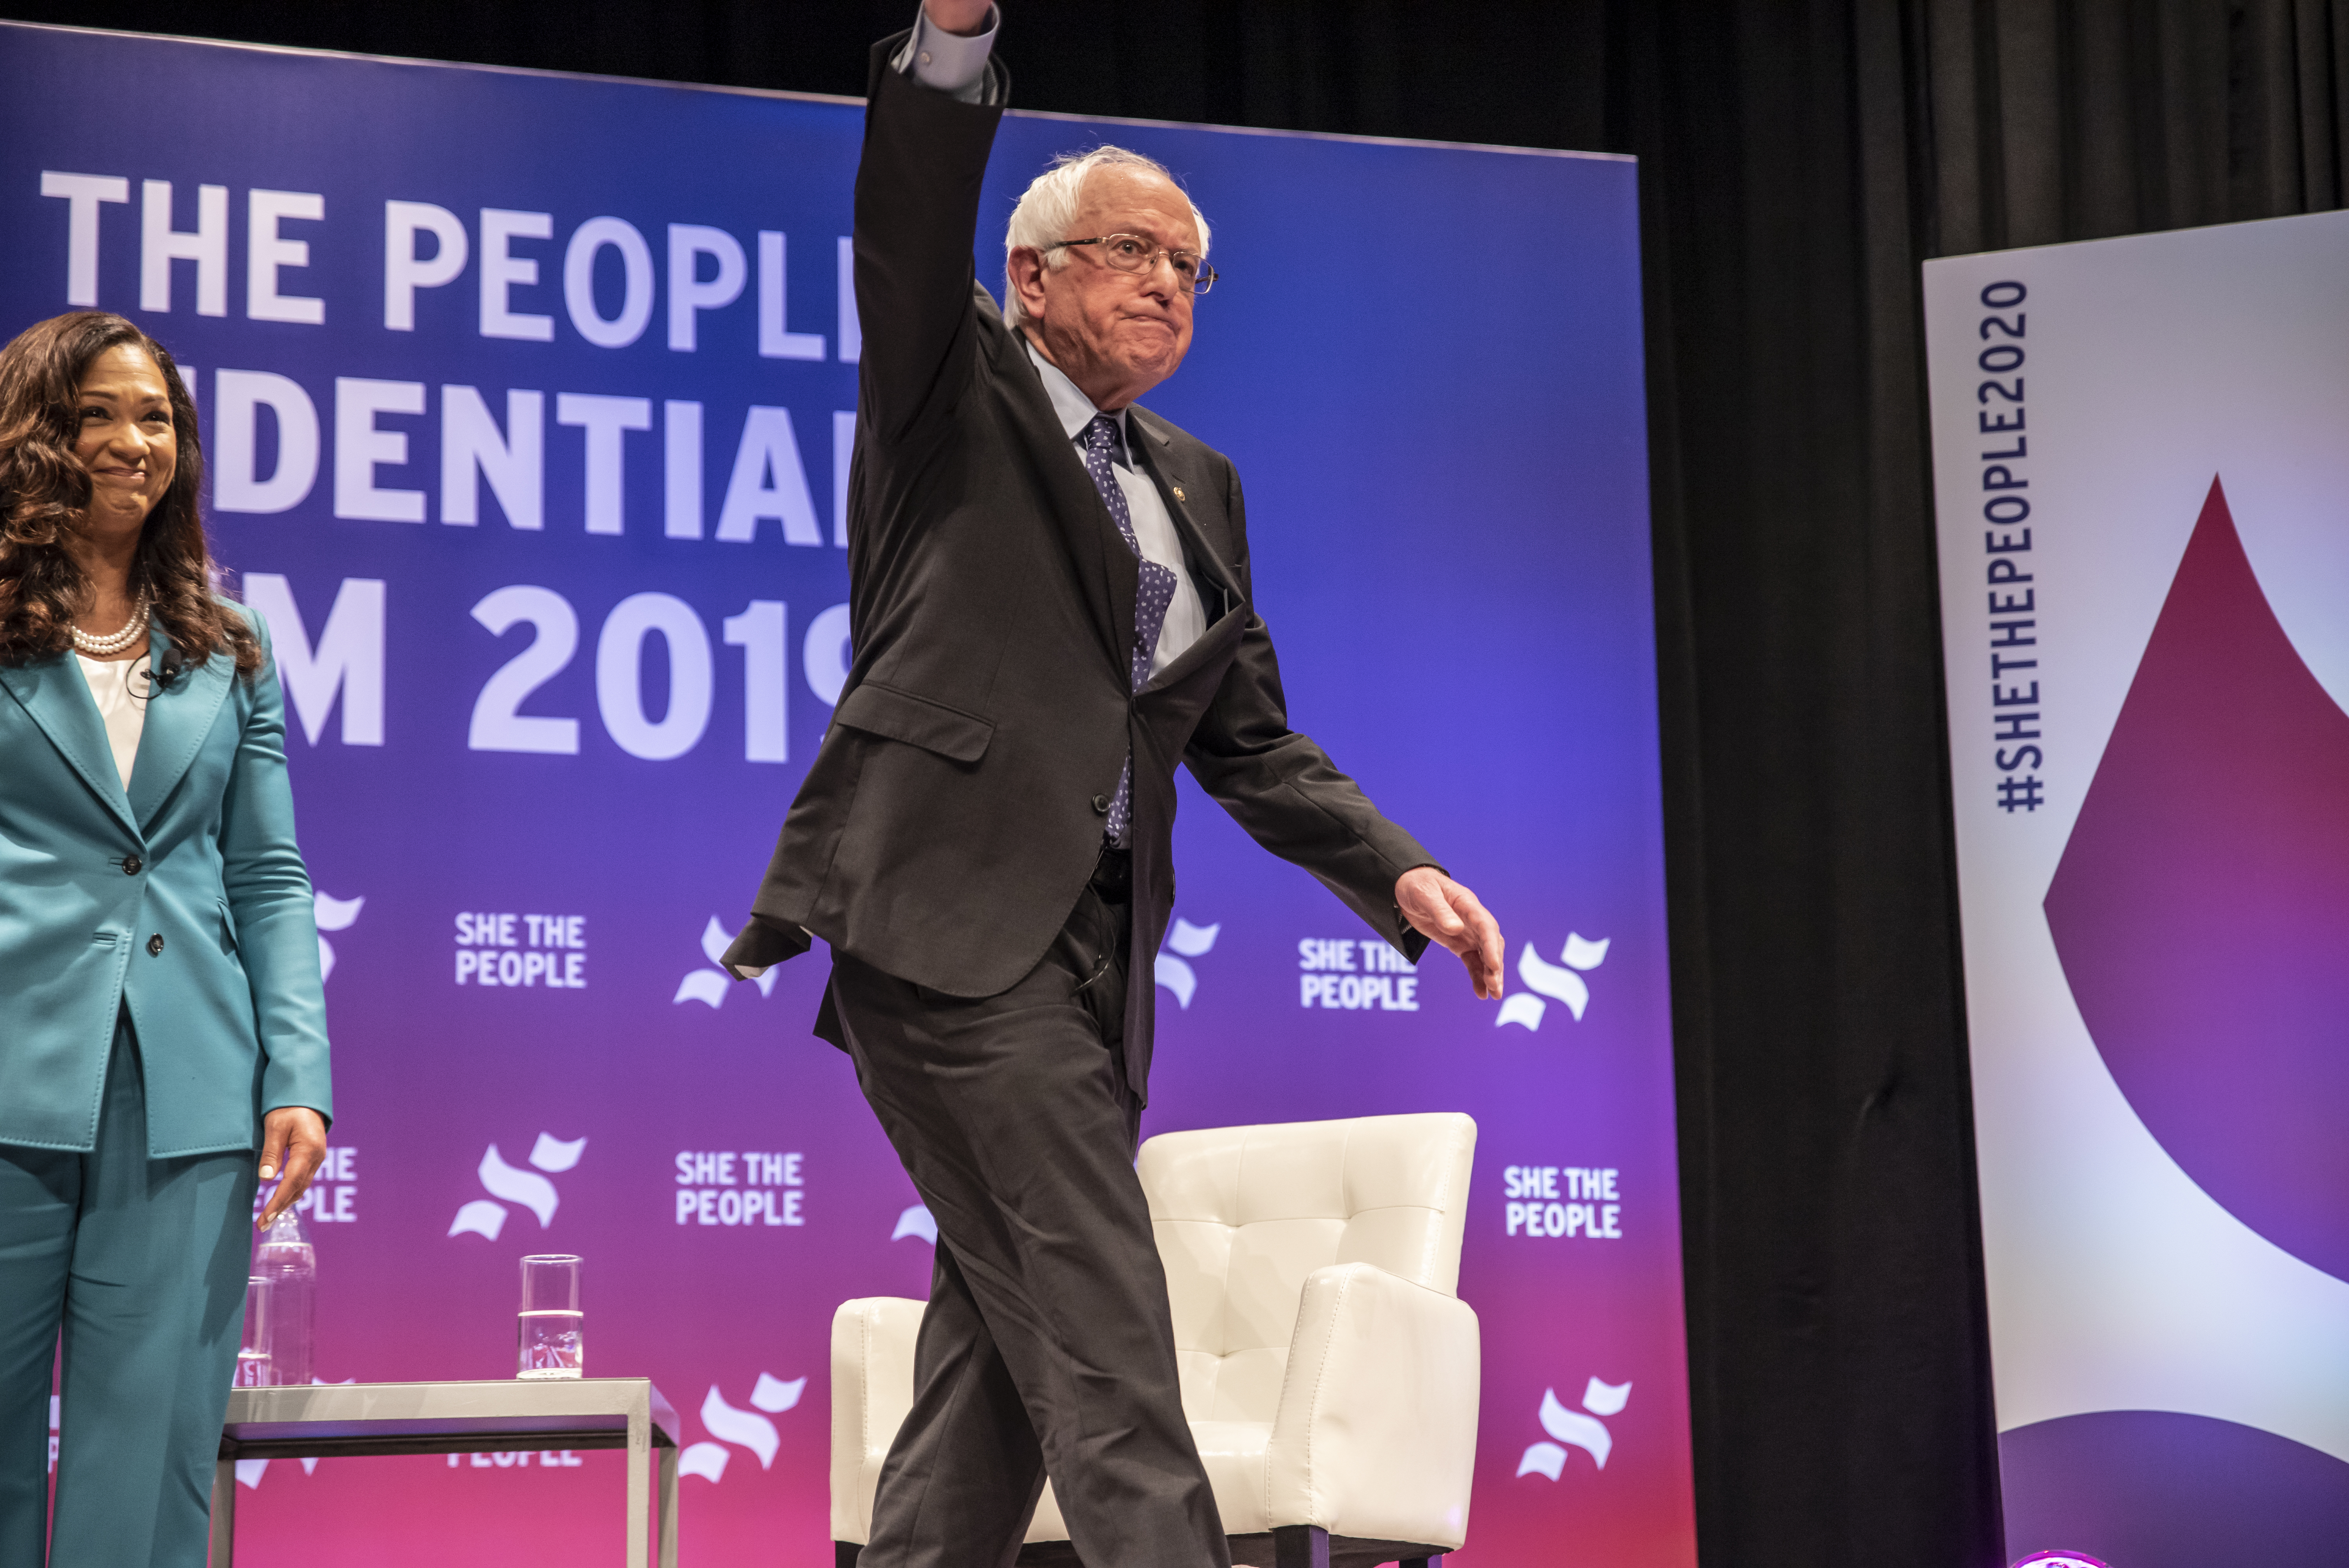 Democratic presidential candidate Sen. Bernie Sanders waves to the crowd at the She The People Presidential Forum at Texas Southern University on April 24, 2019 in Houston, Texas. (Sergio Flores/Getty Images)